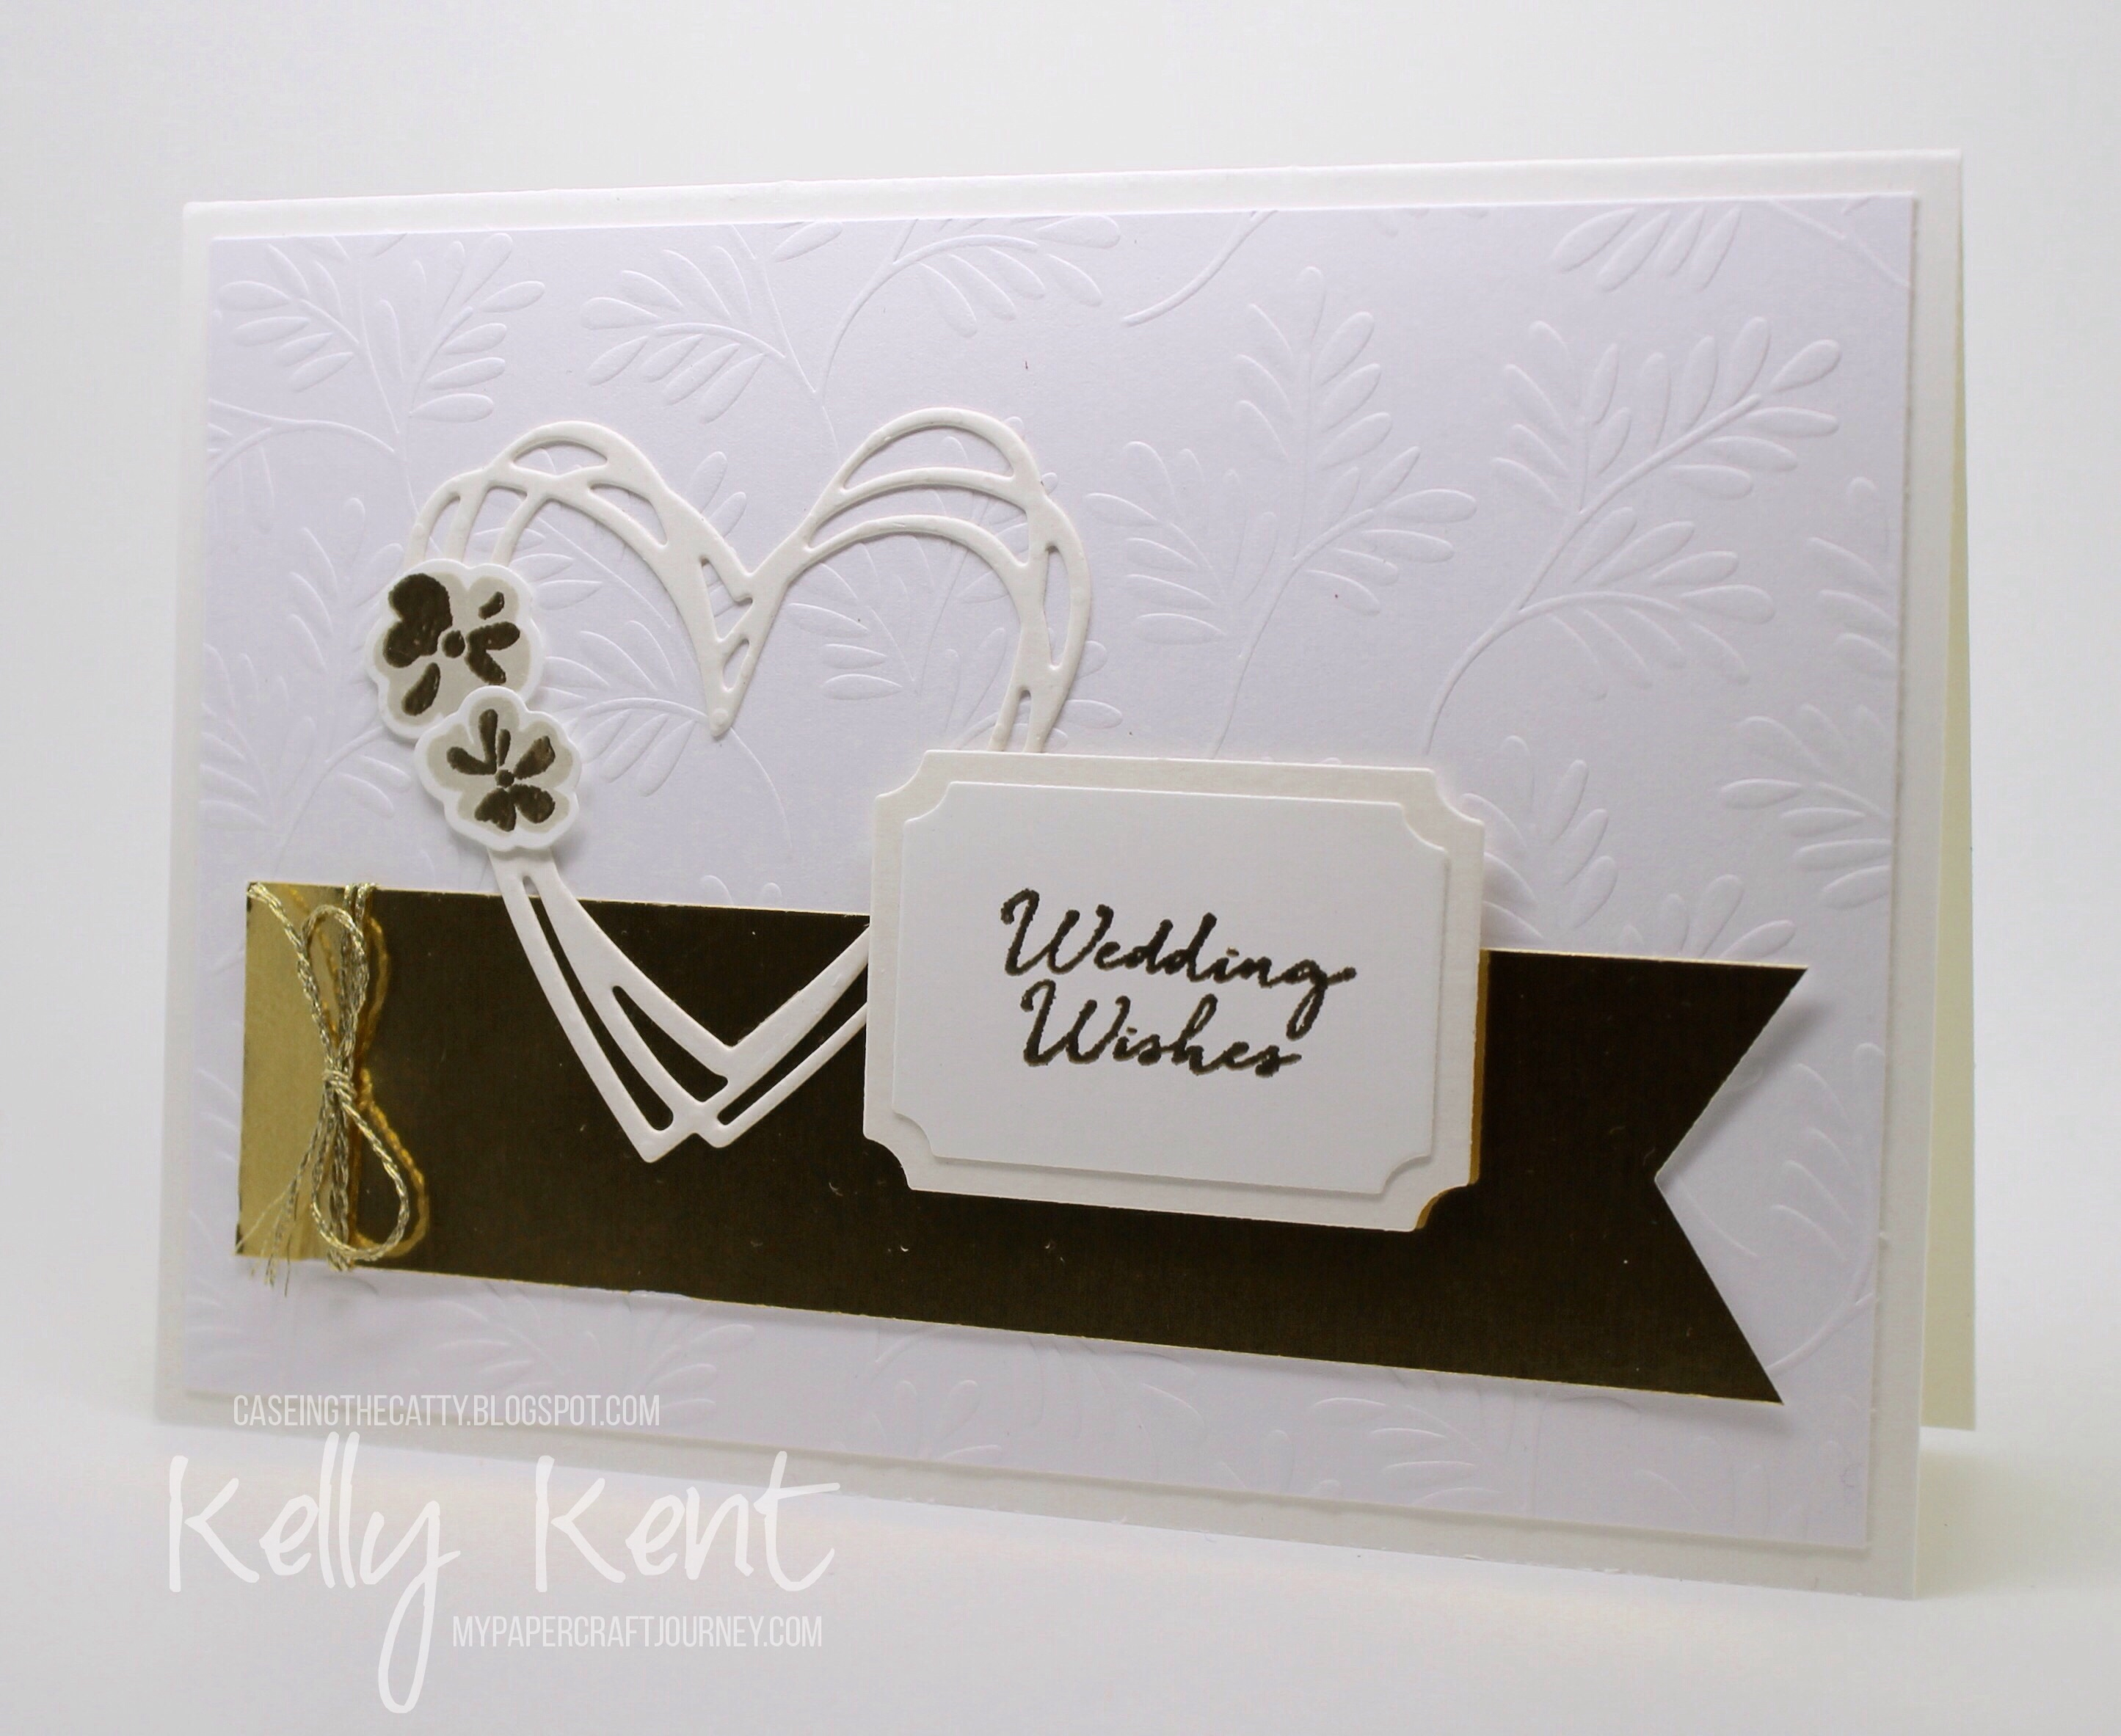 CASEing the Catty #92 - Everyday Occasions. Wedding Wishes Trio - Gold. Kelly Kent - mypapercraftjourney.com.